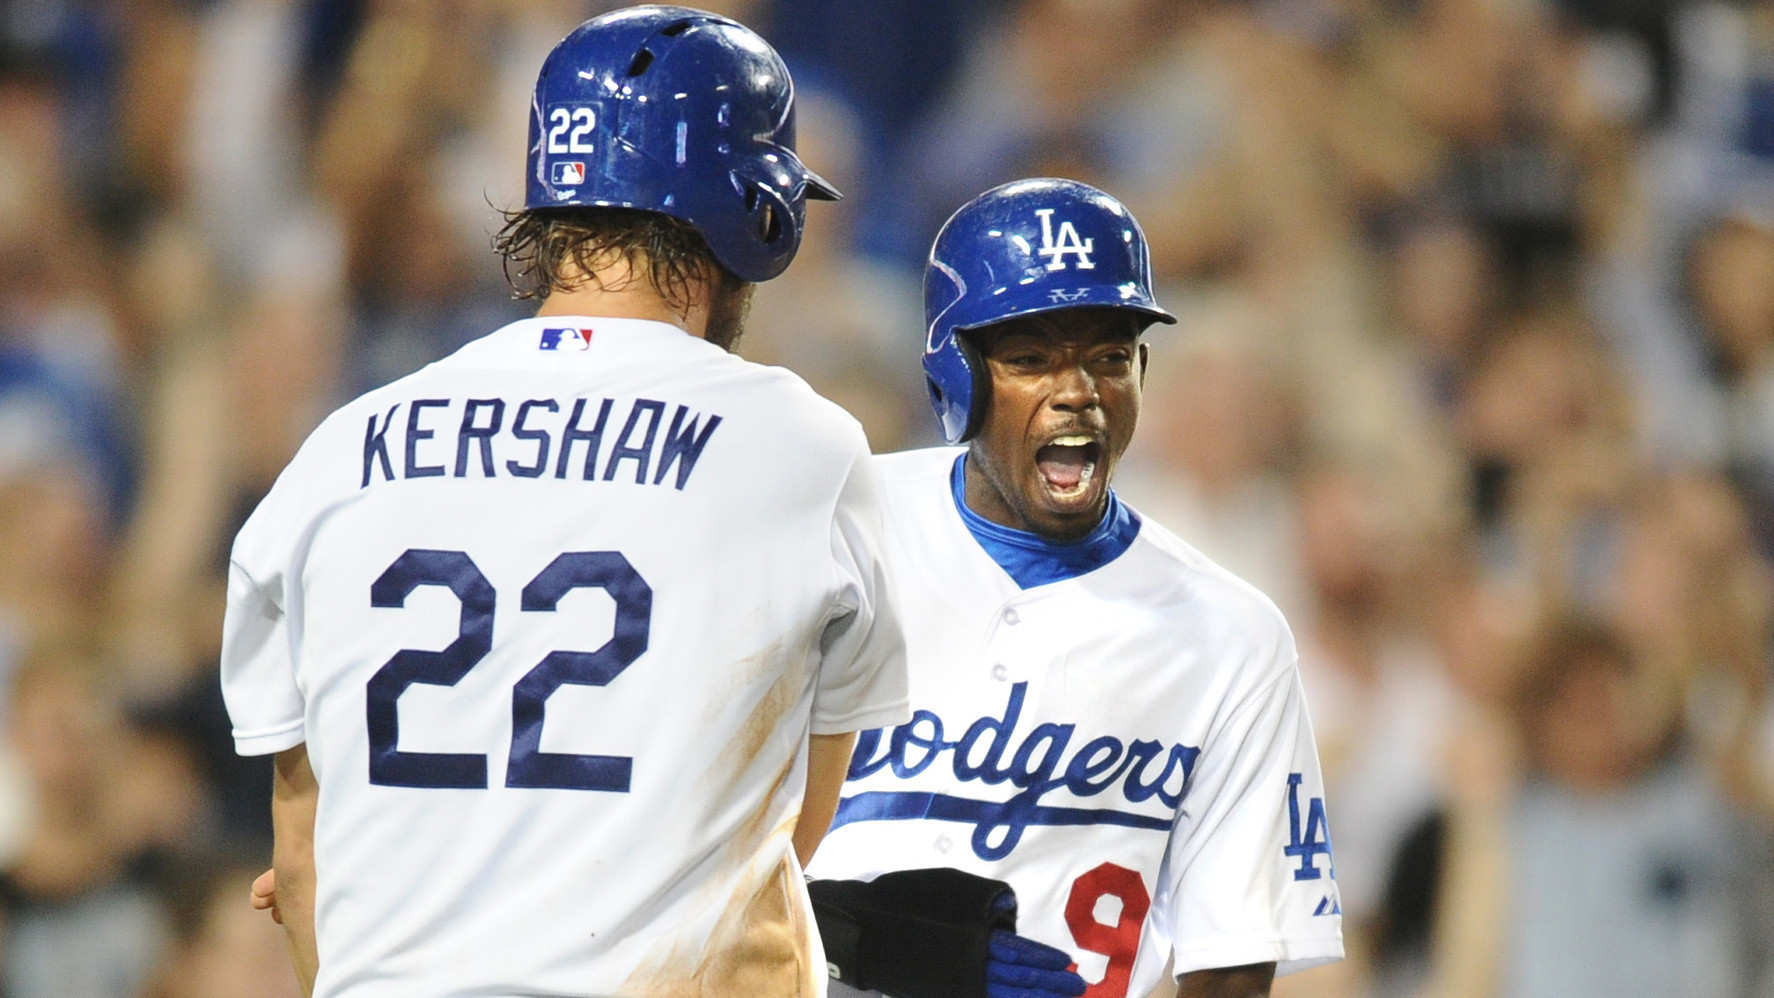 Clayton Kershaw wins again as Dodgers down Nationals, 4-1